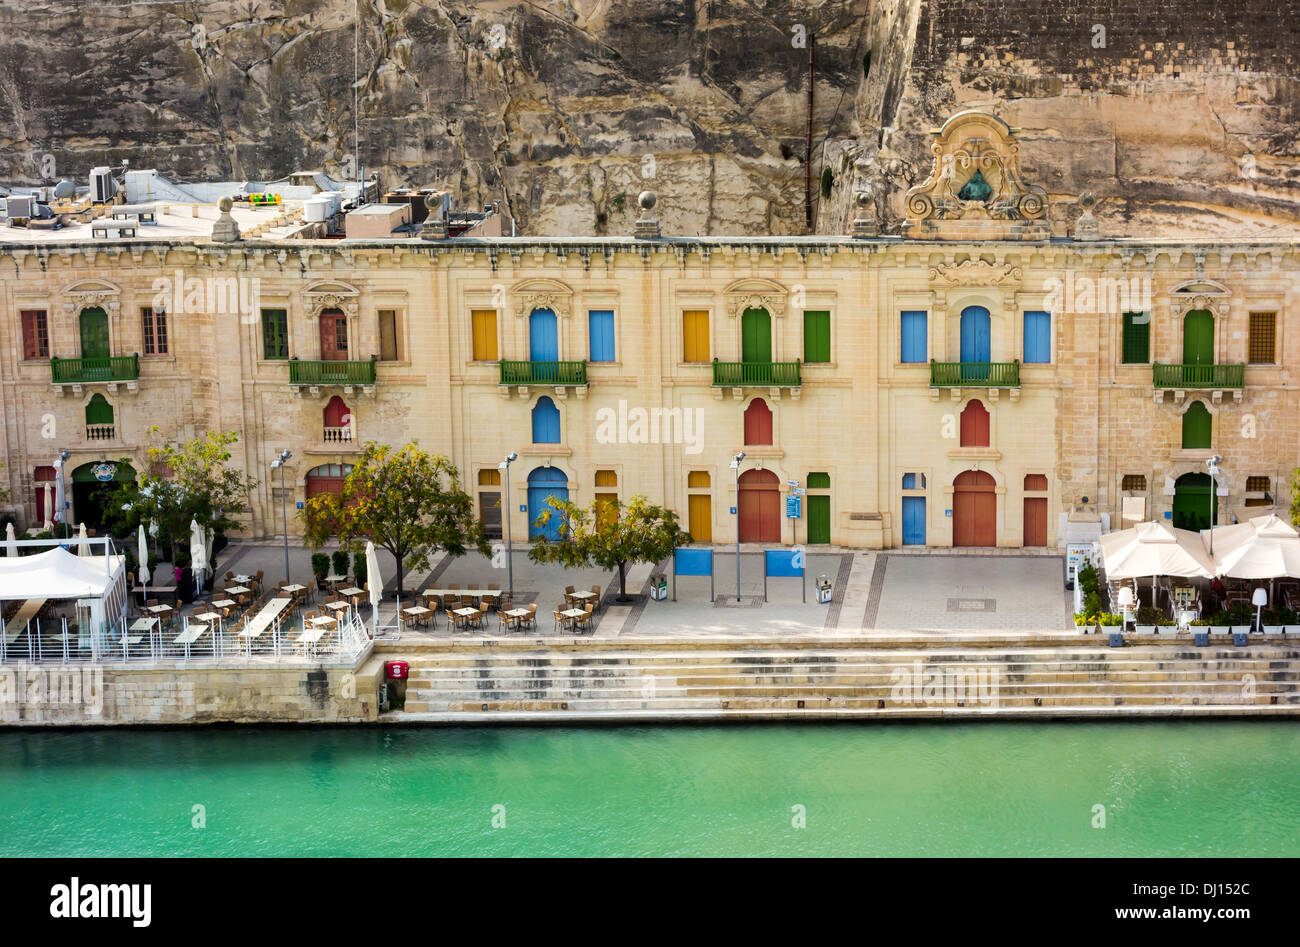 The sights of, overlooking, around and on the Island of Malta: Republic of Malta, Maltese Mediterranean Sea Europe buildings - Stock Image